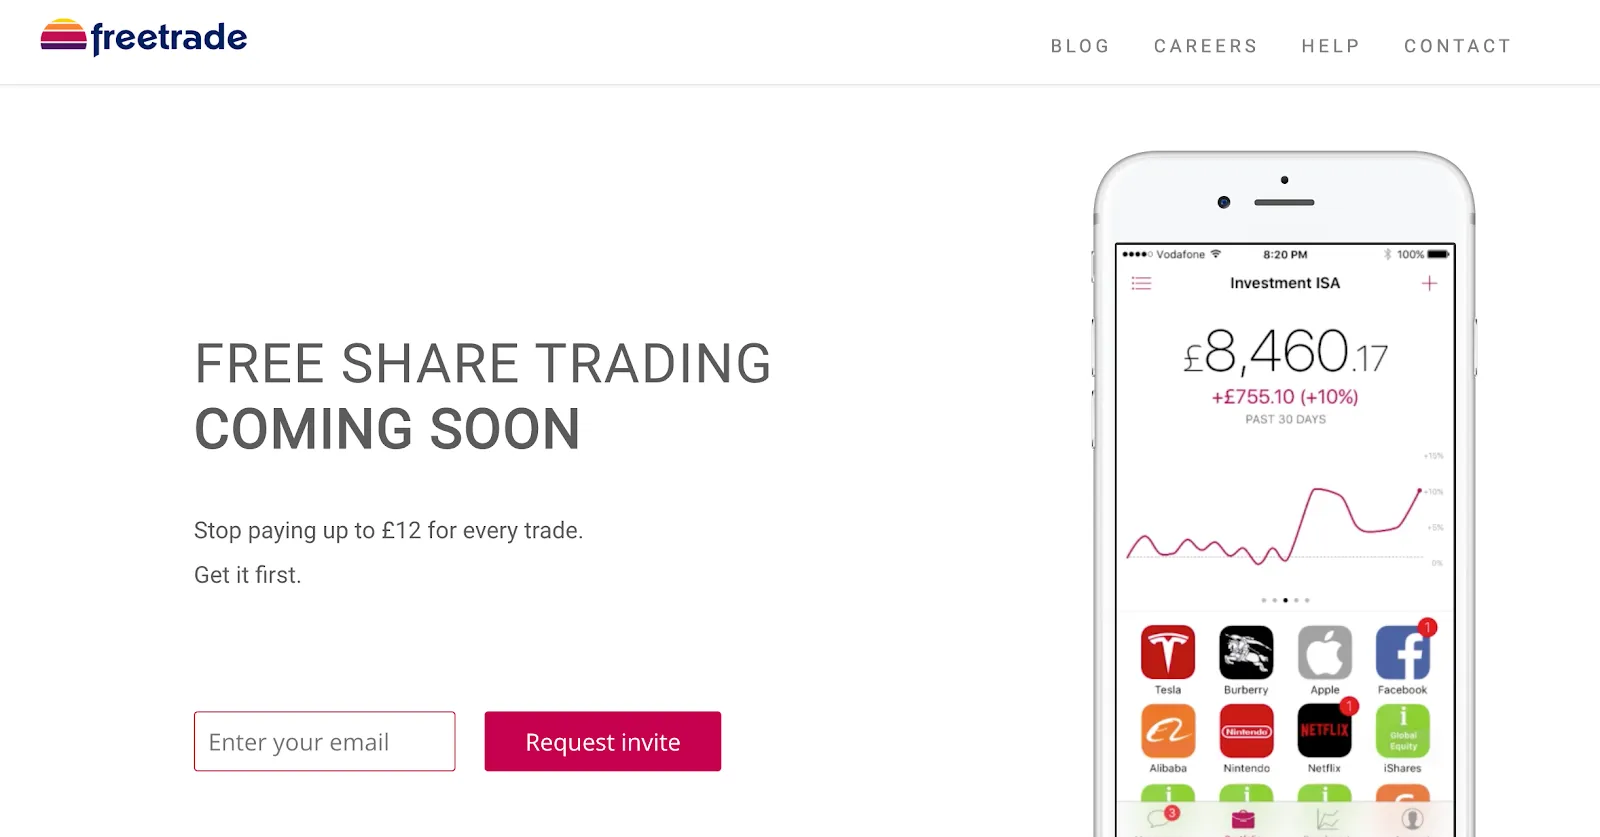 freetrade coming soon page